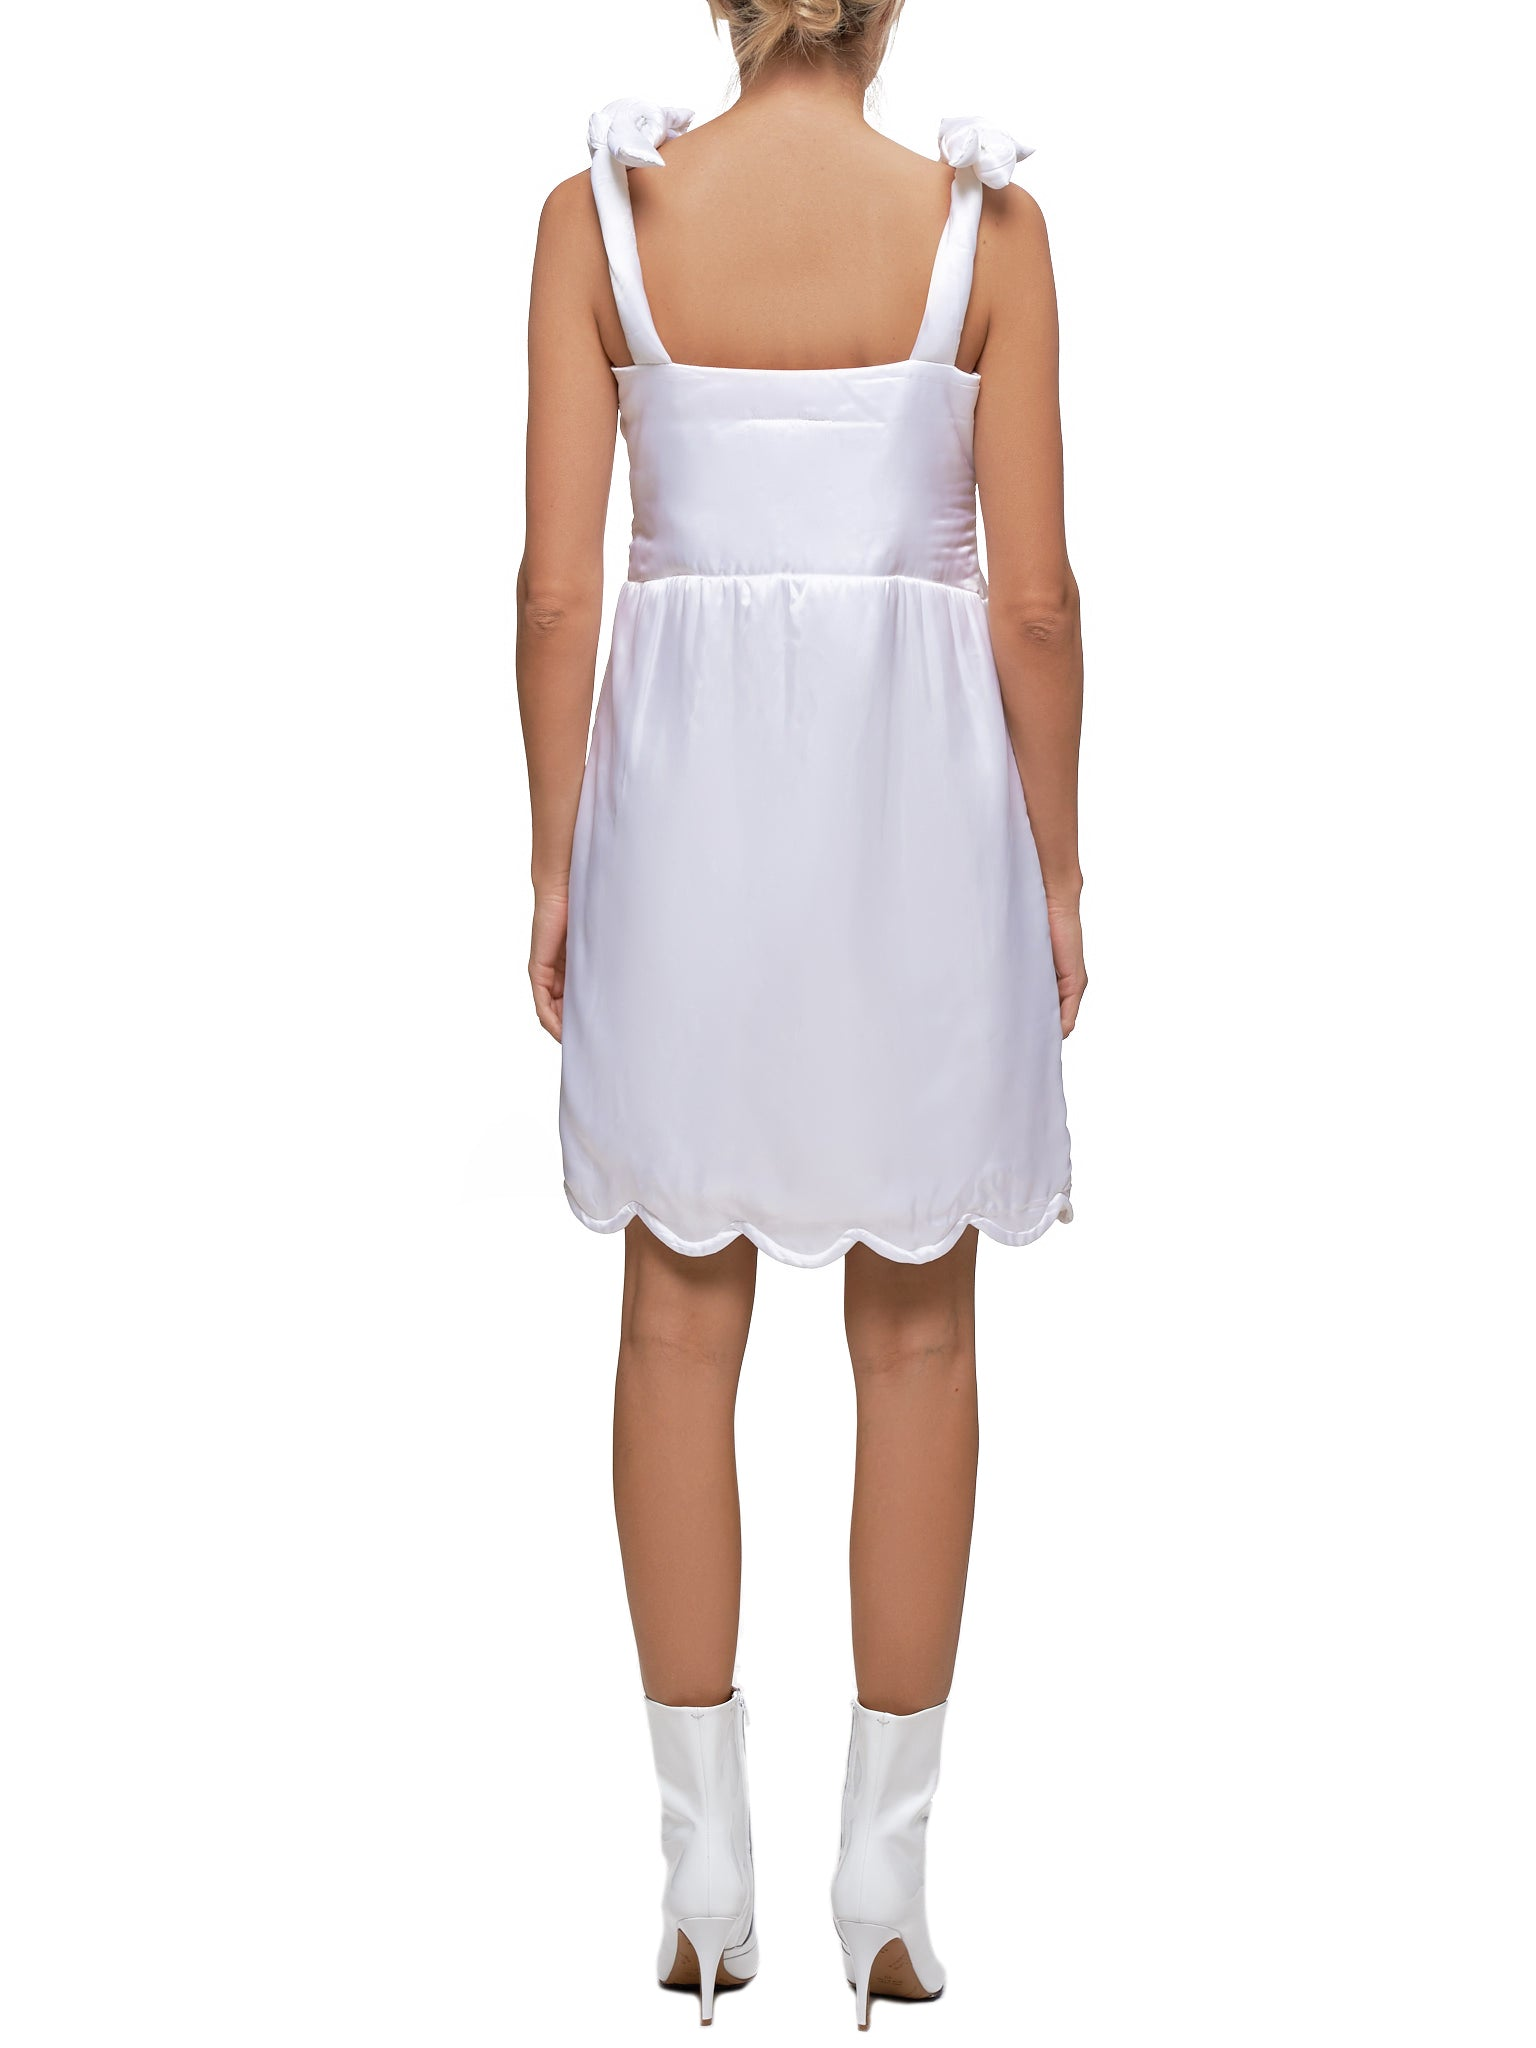 MM6 Maison Margiela Dress - Hlorenzo Back